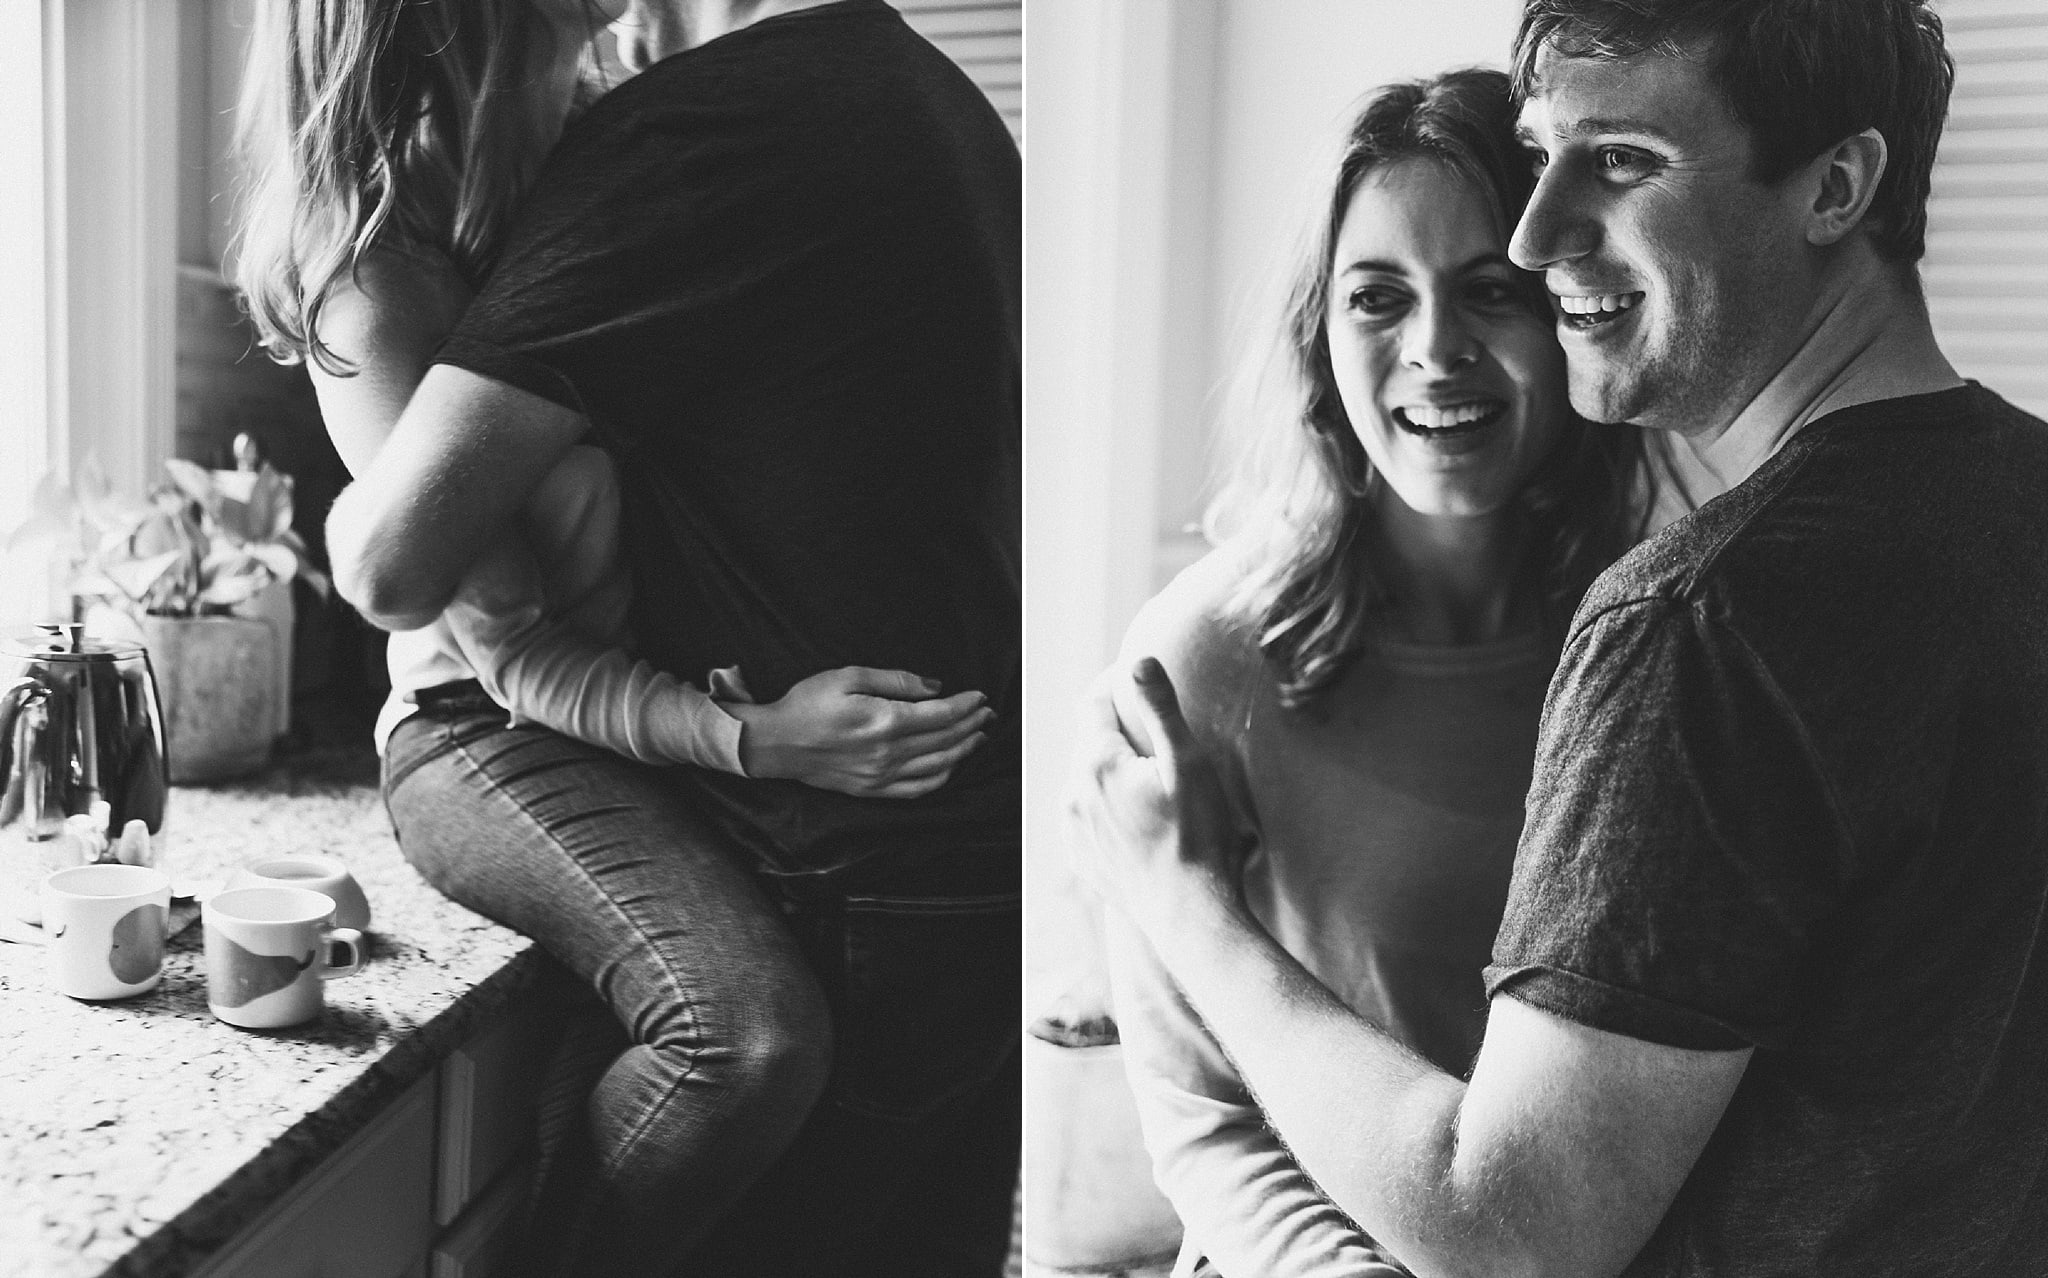 Michigan Wedding Photographer - ME+HIM Photography Intimate In-Home Session Engagement Session